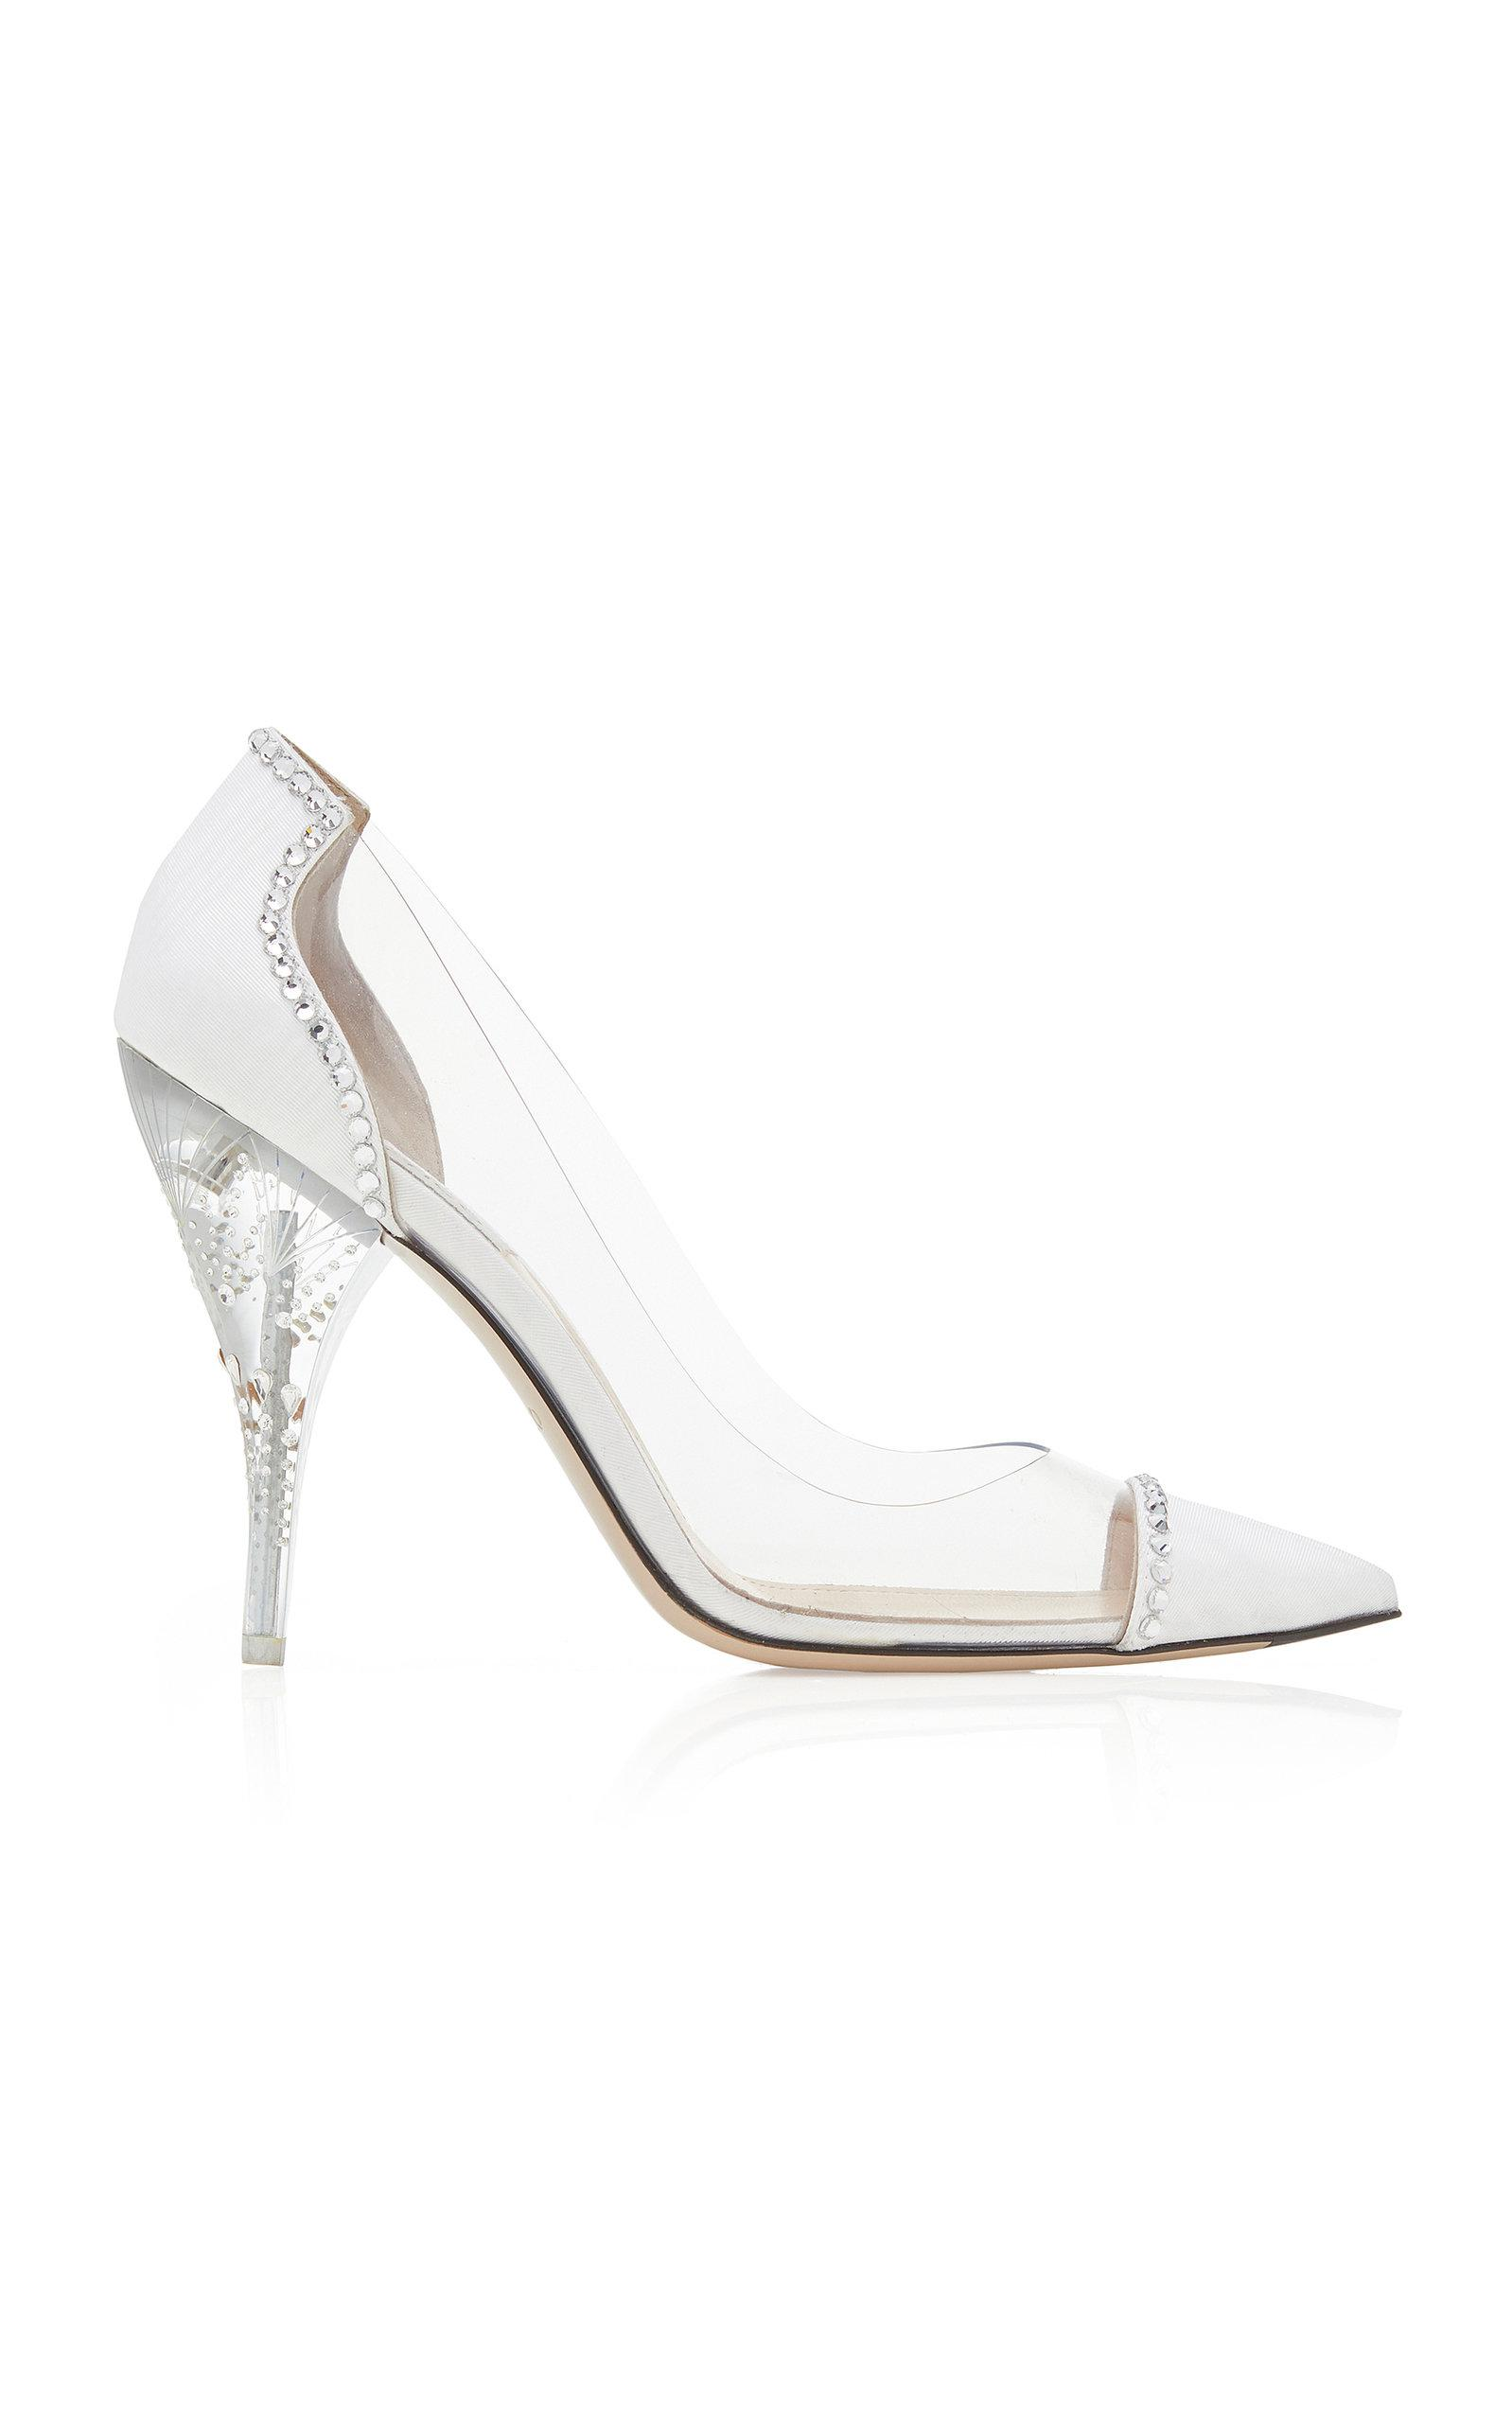 161bf4db5c Lyst - Attico Cindy Crystal Pumps in White